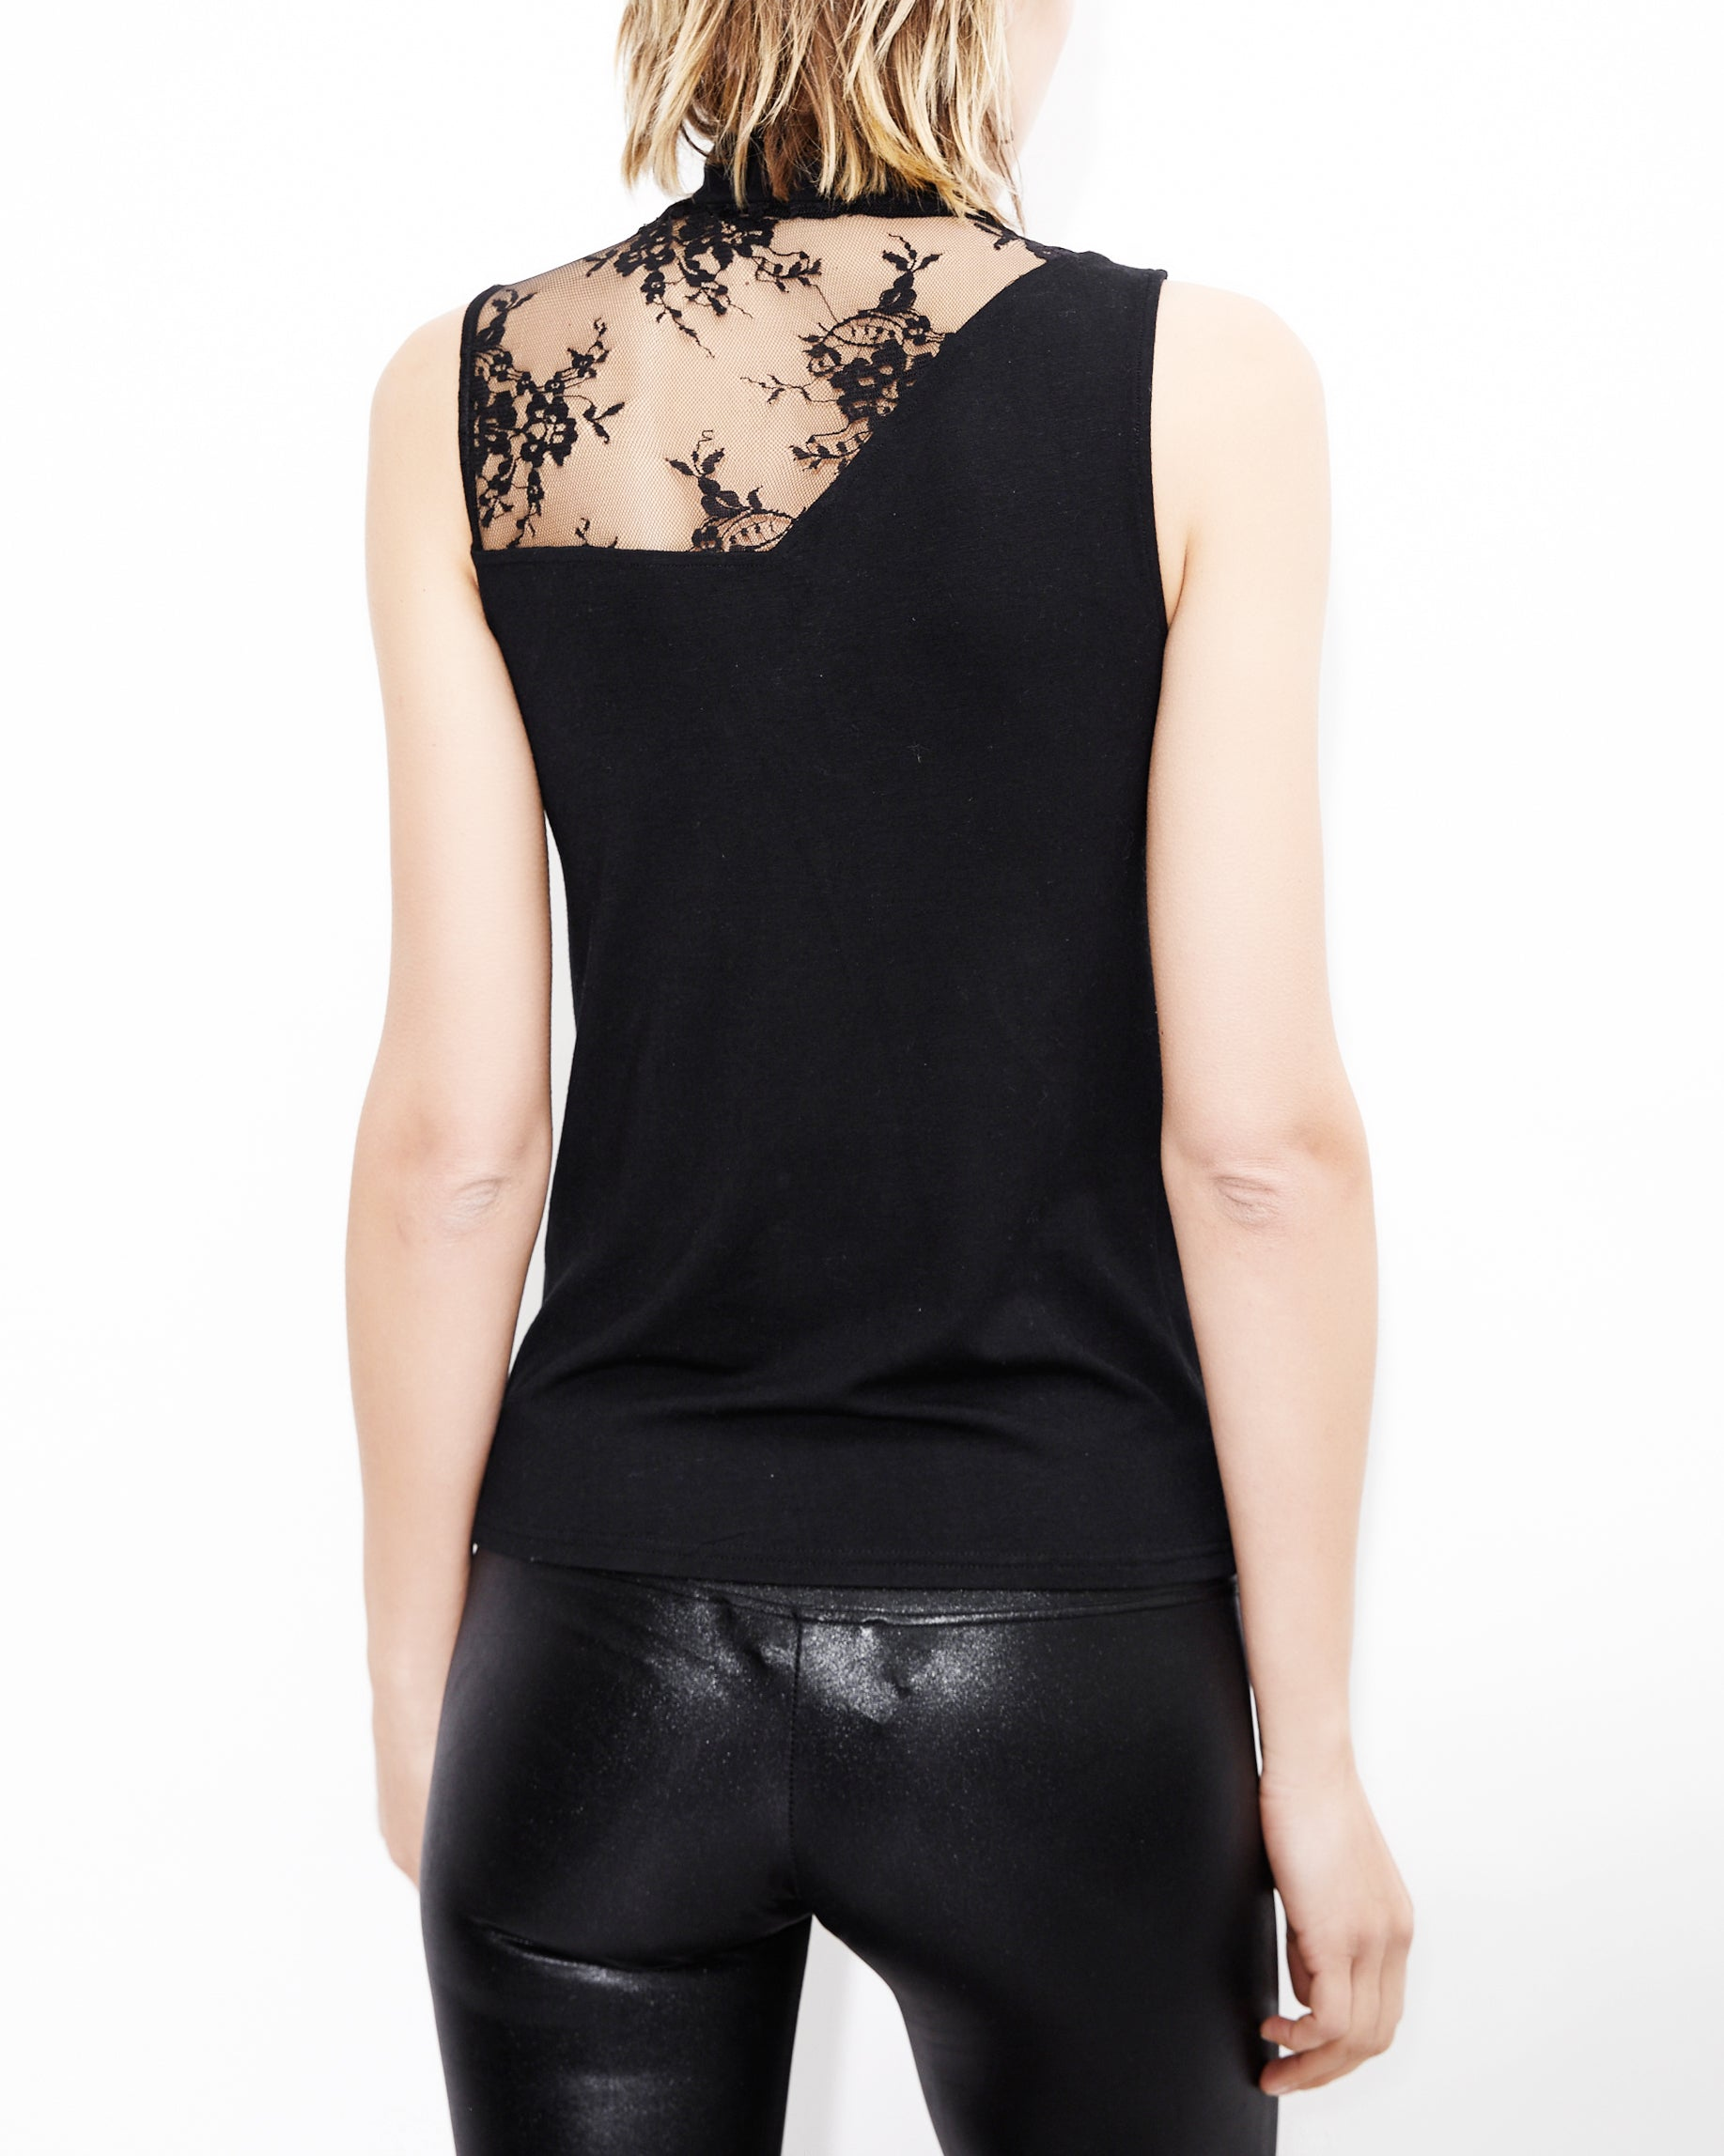 Harper Lace Black Top. Generation Love. NYC Modern Women's Clothing